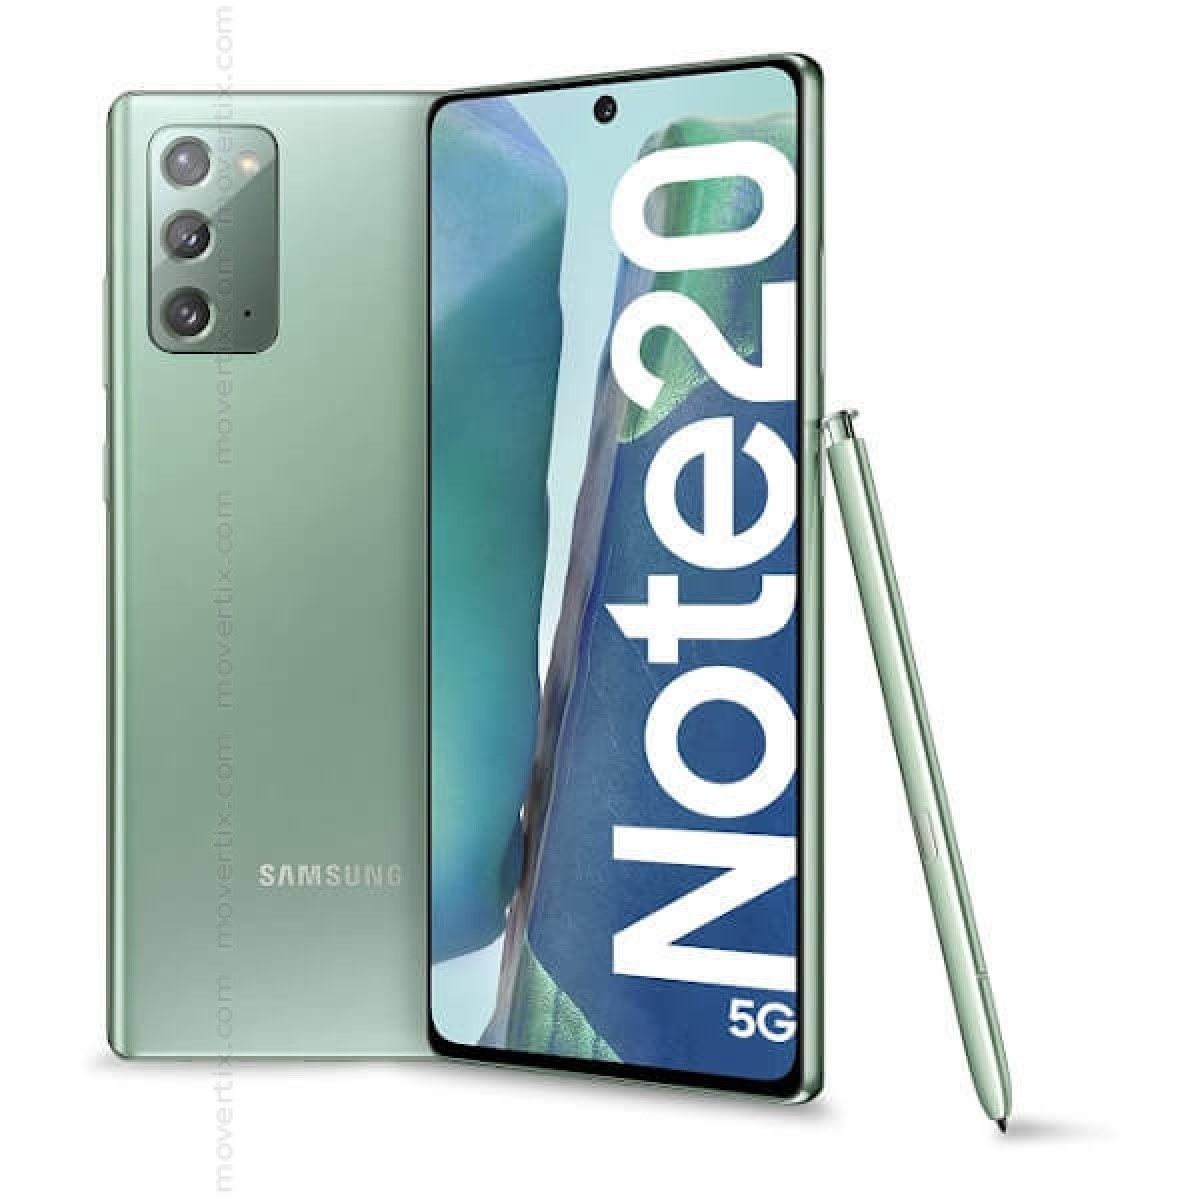 Samsung Galaxy Note 20 price feature and reviews in bd